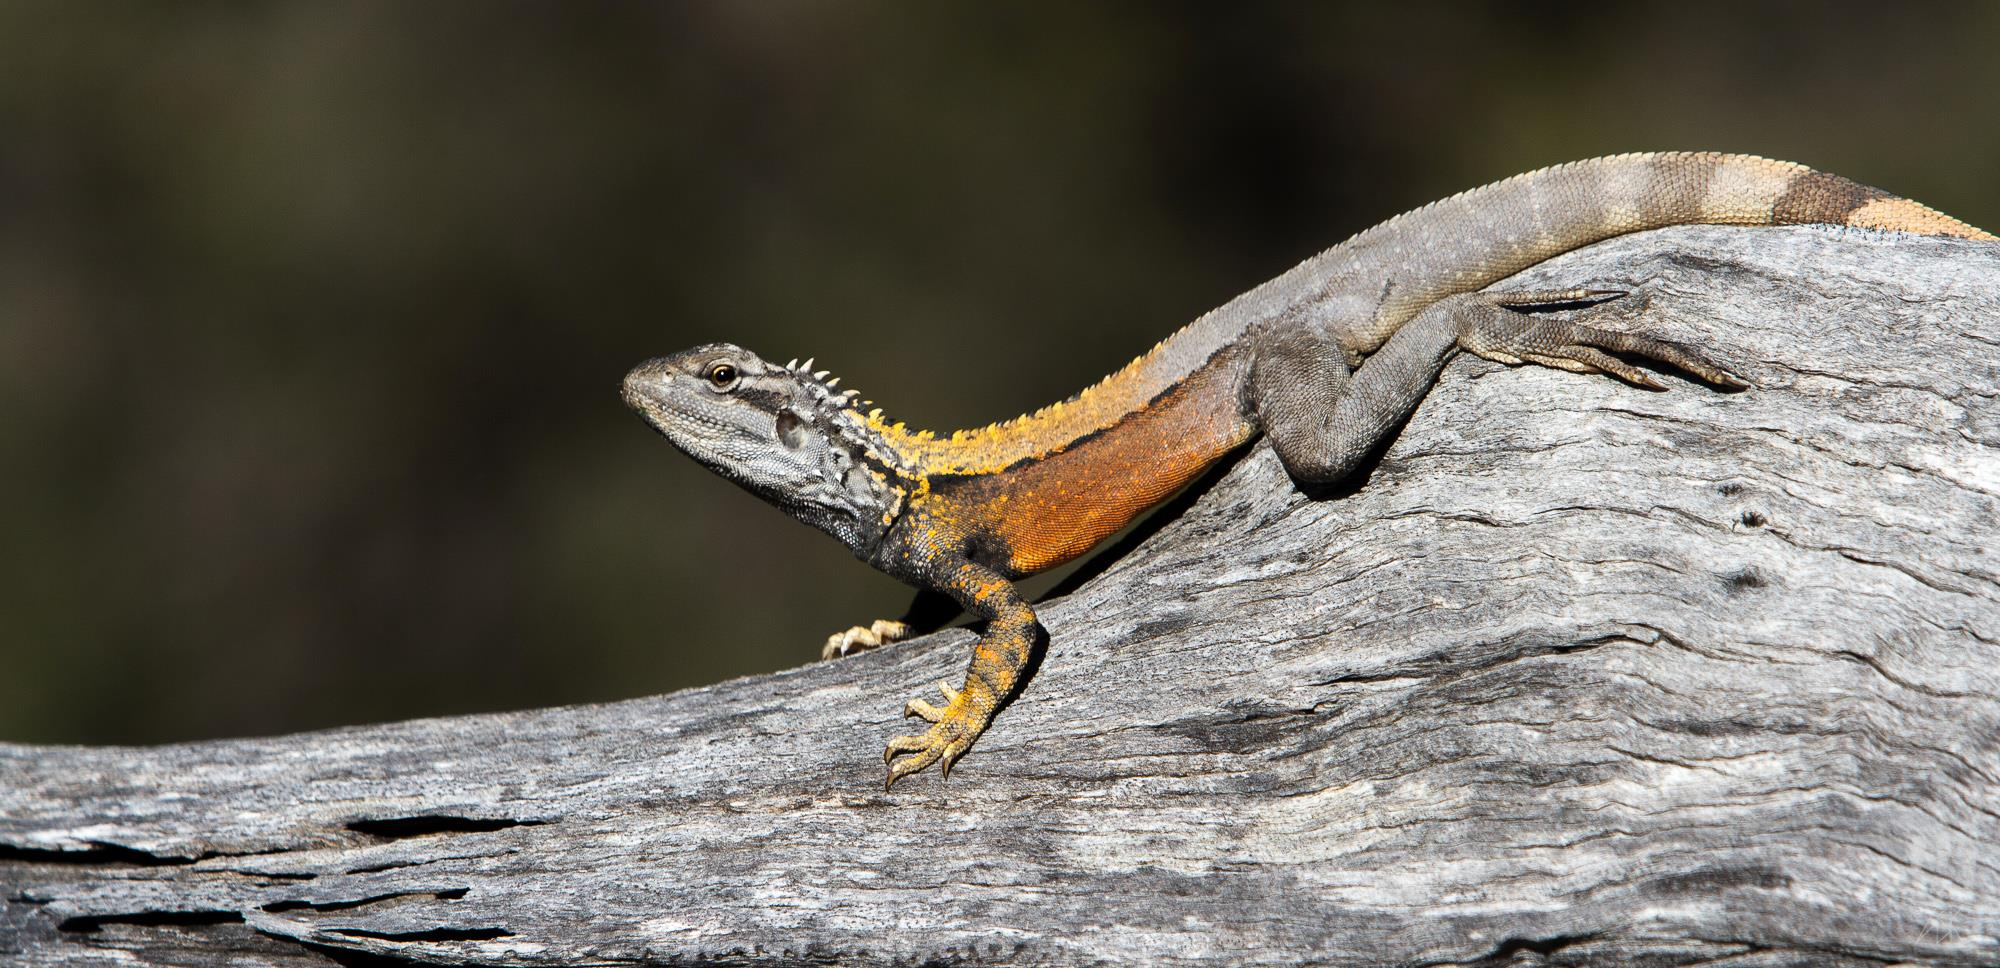 Male bicycl  e dragon (  Ctenophorus cristatus).  Lake Hurlestone Conservation Reserve, Western Australia, 2013. Photo by Angus Kennedy. From  this post .